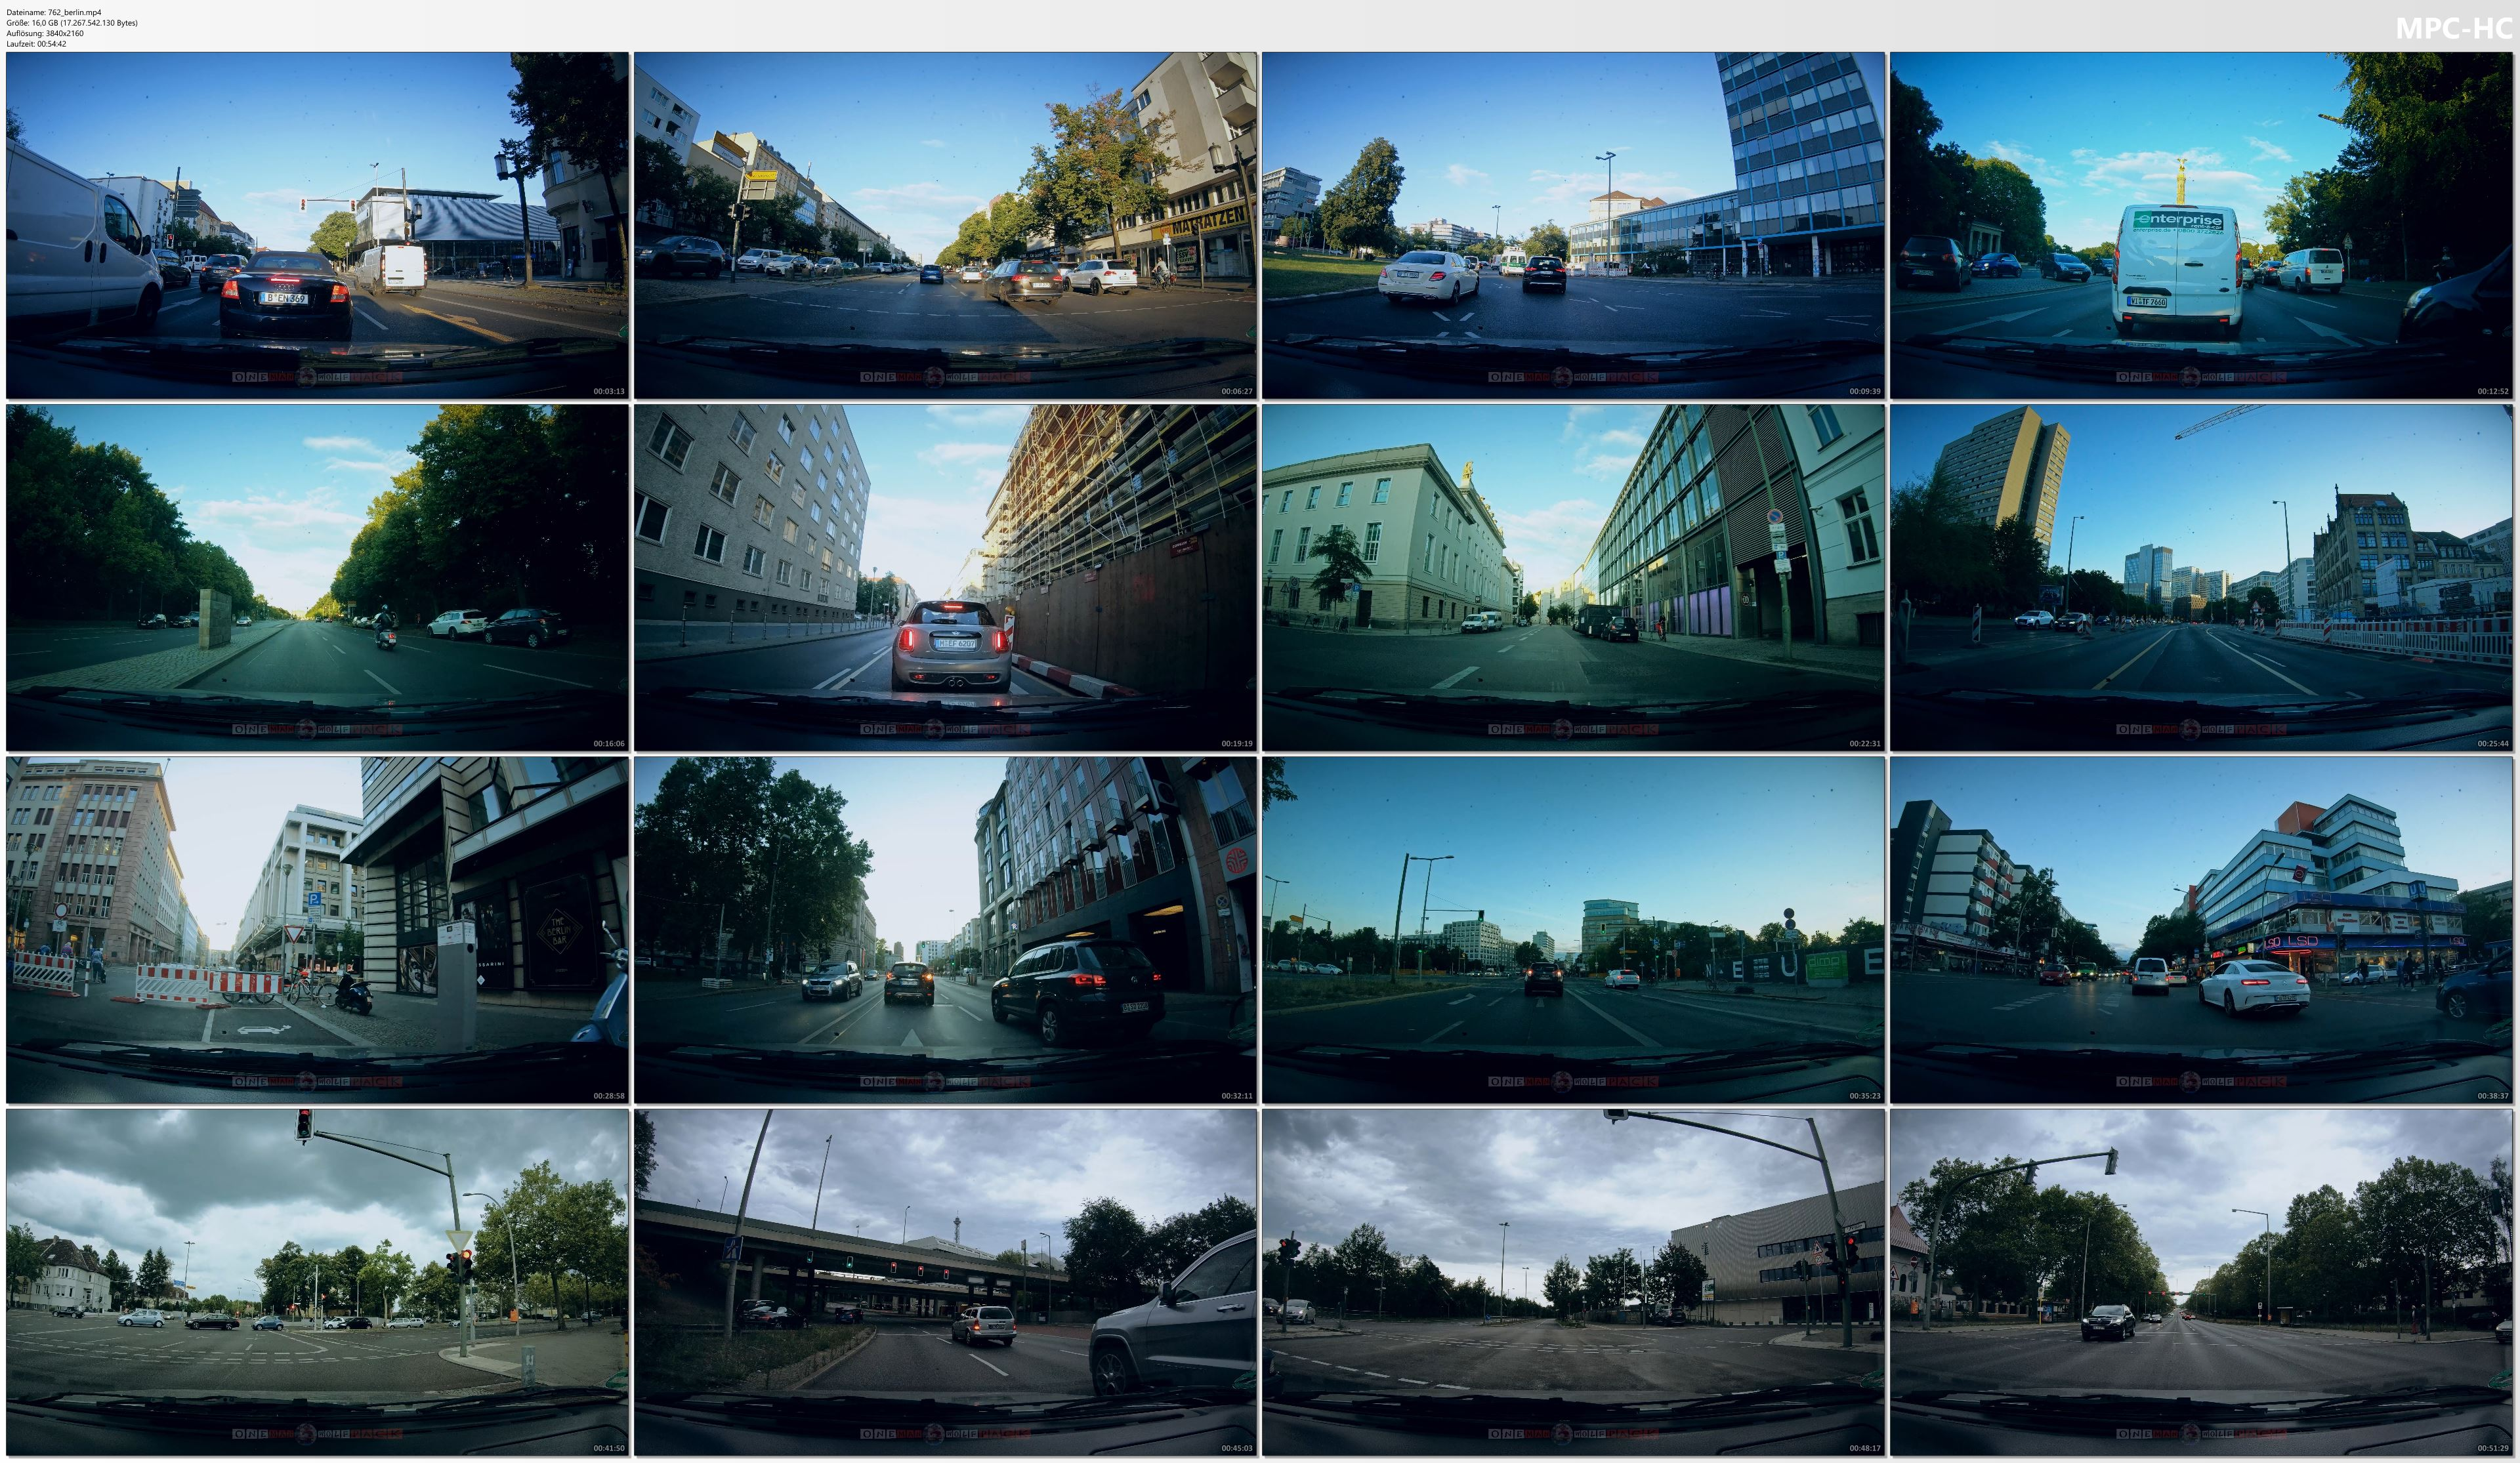 Pictures from Video 【4K】1 HOUR RELAXATION FILM: «Driving in Berlin (Germany)» Ultra HD (for 2160p Ambient TV)